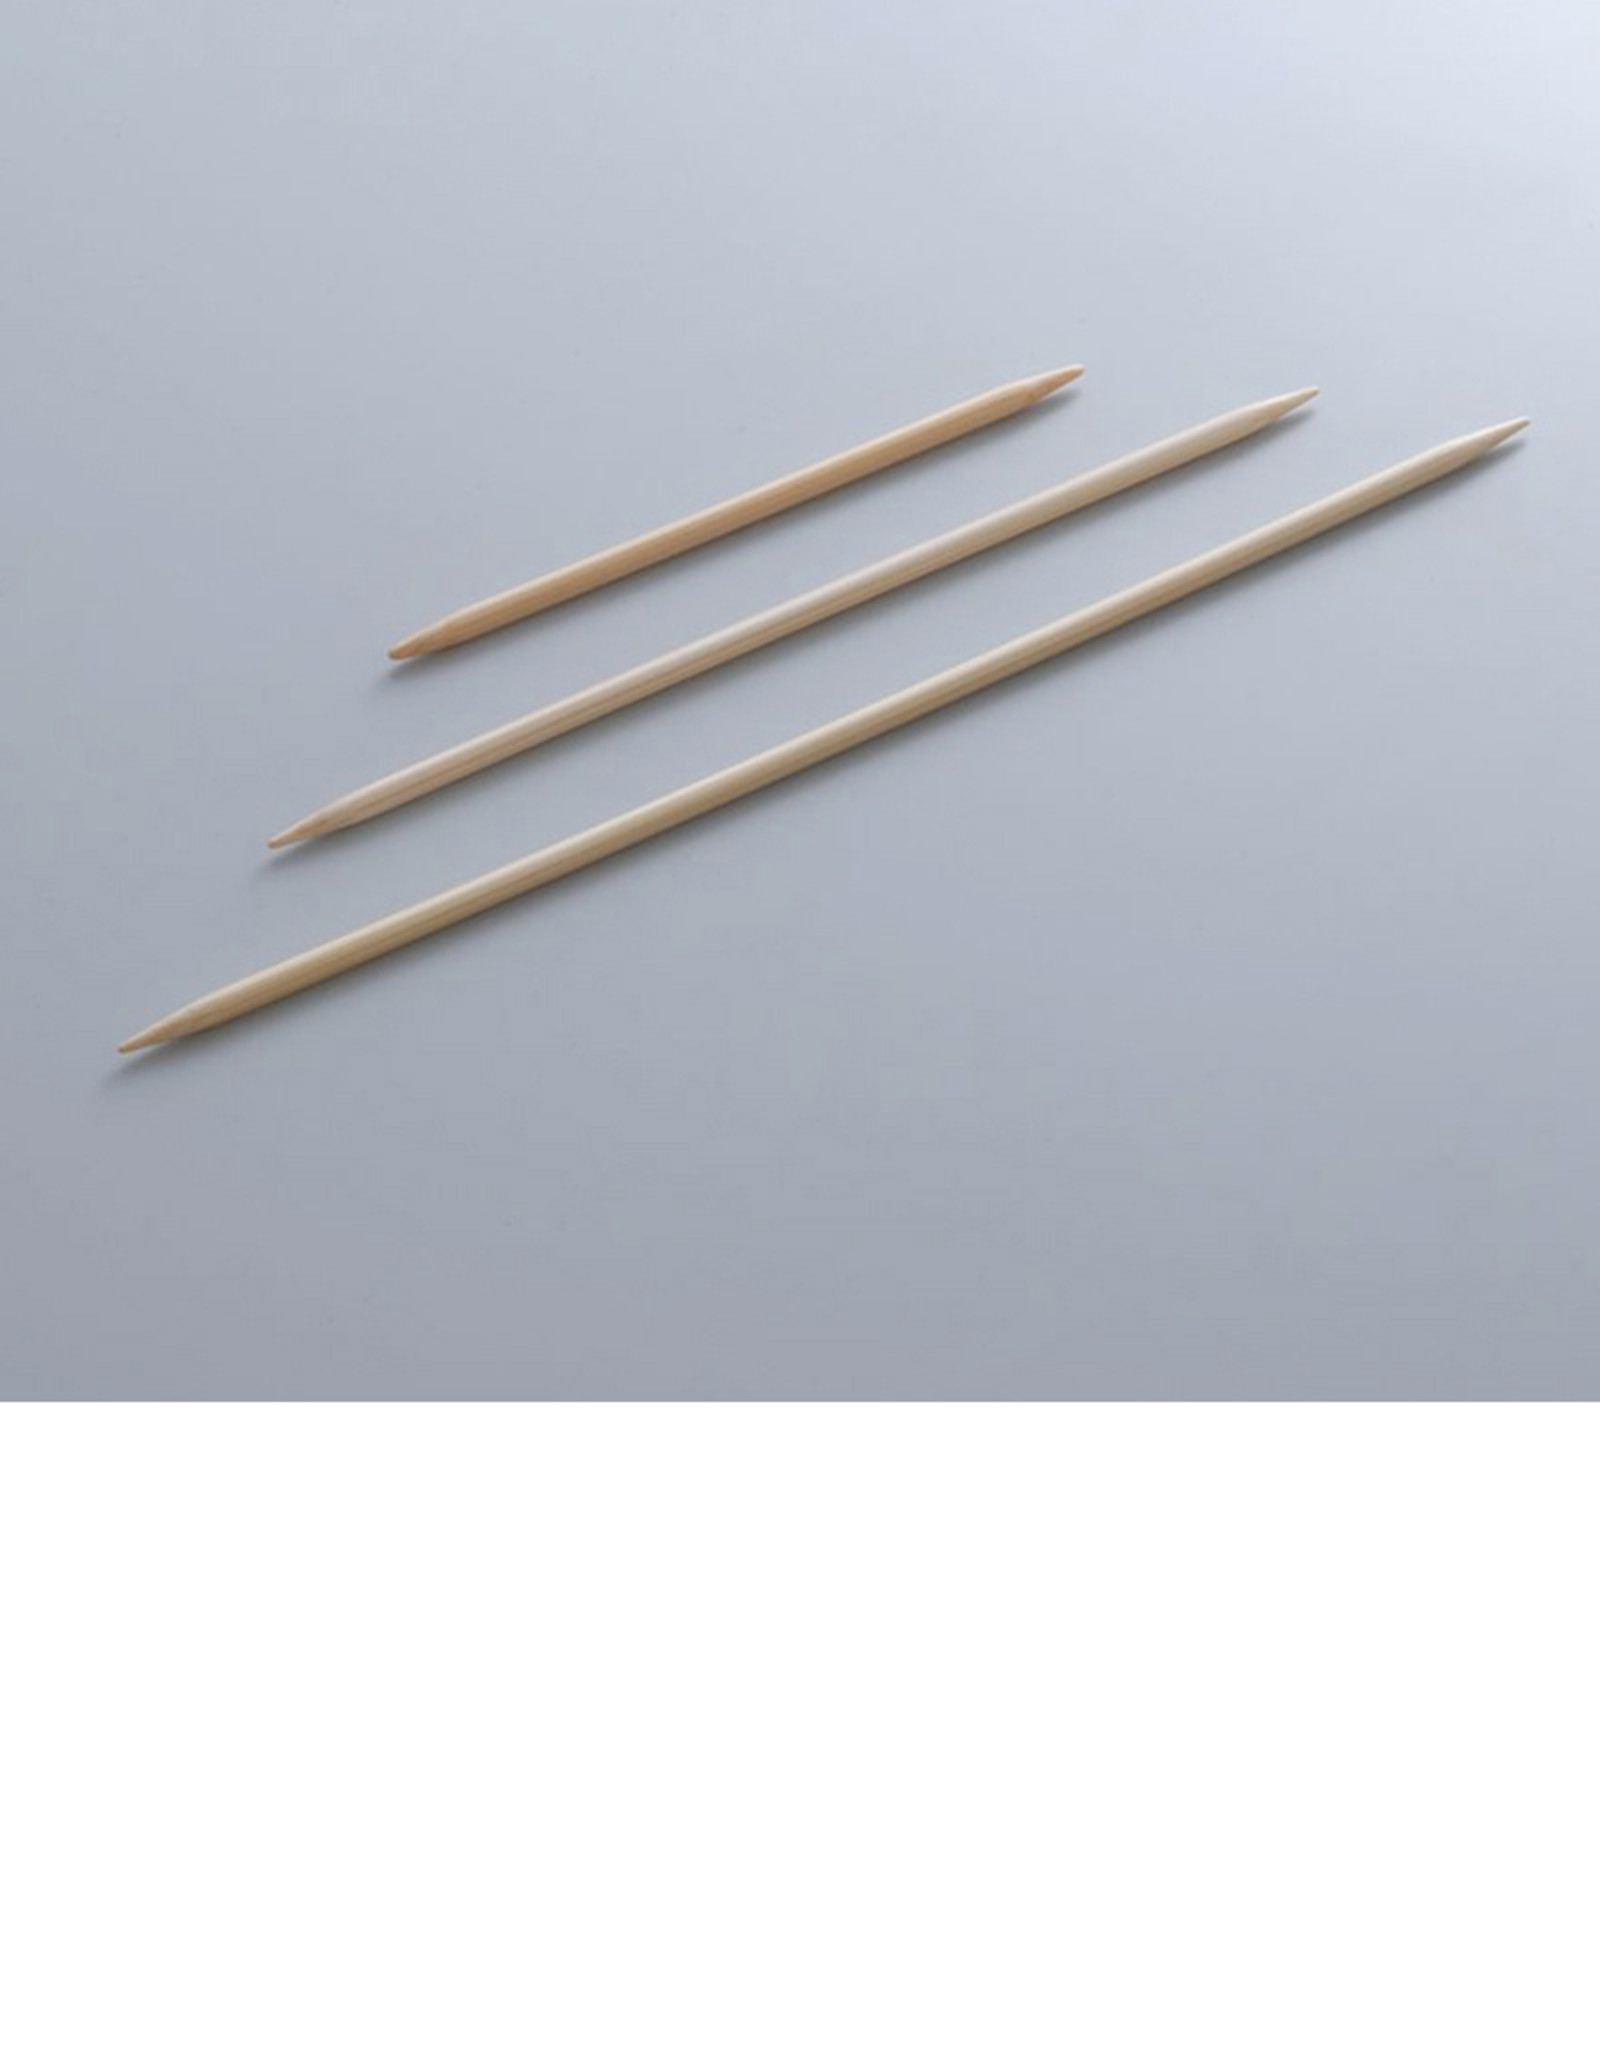 Kinki Amibari KA Double Point Needles US 15